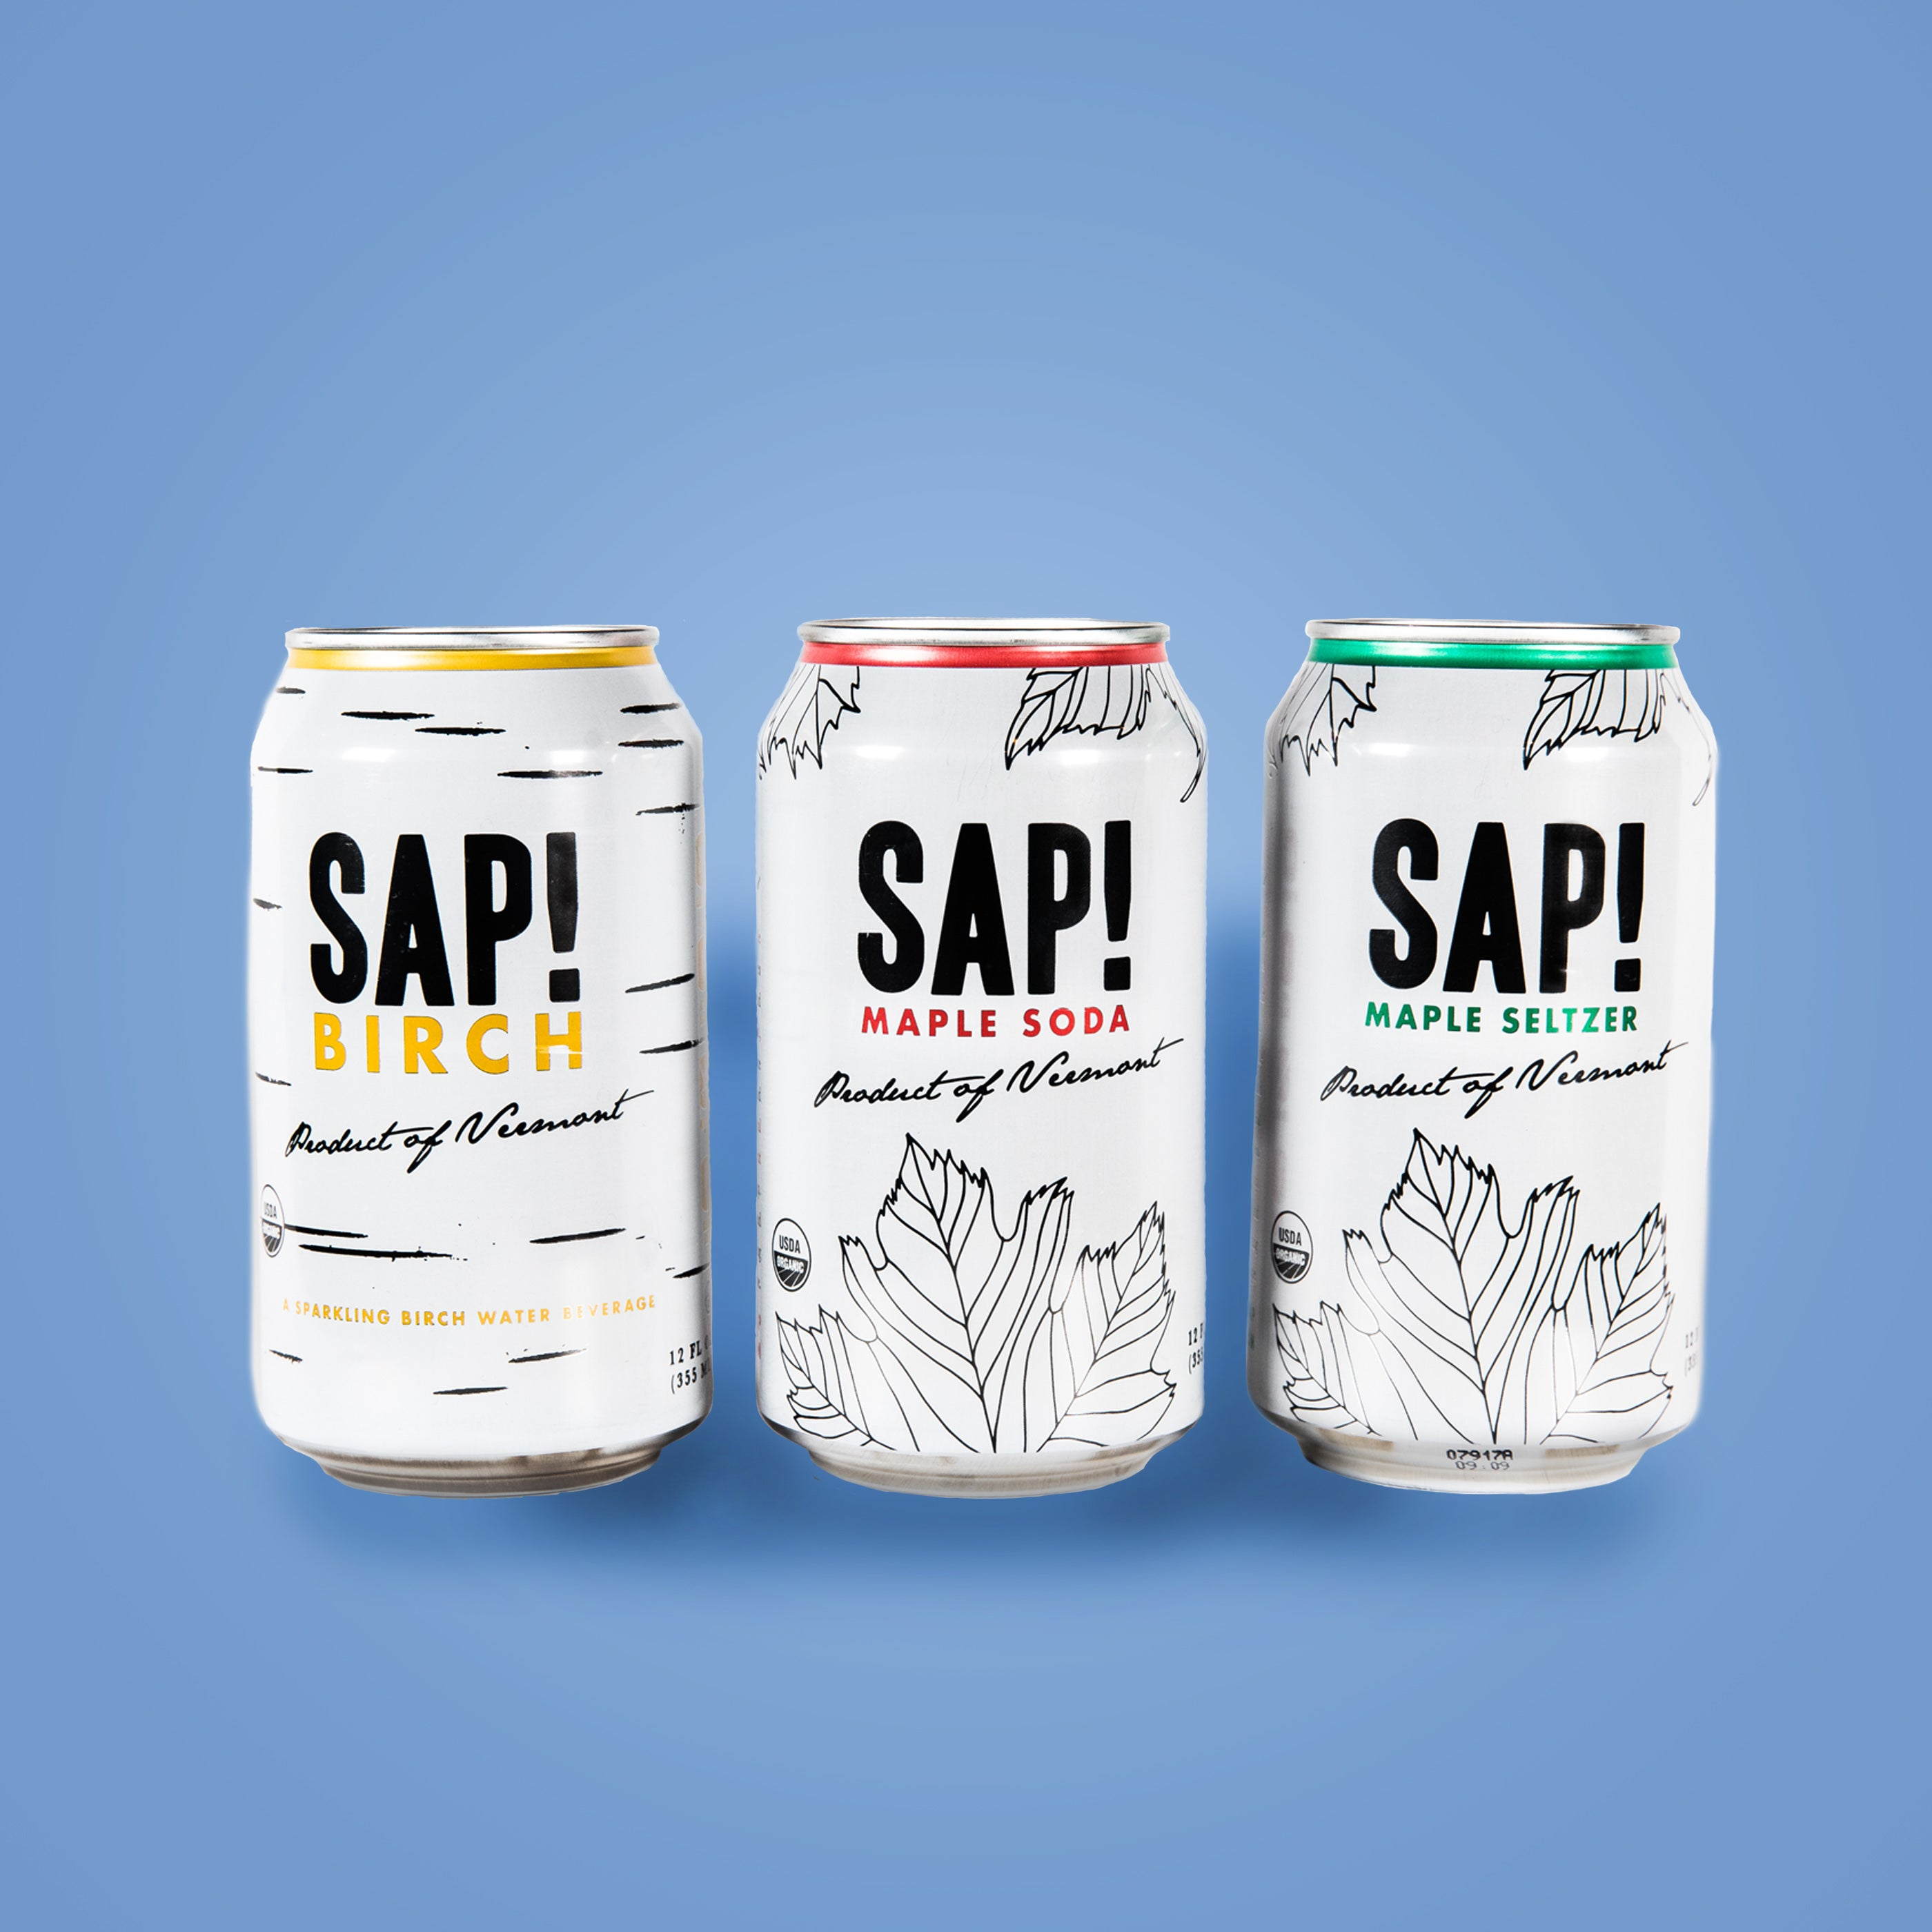 ORIGINAL SAMPLER - Mixed 12-Pack (Sap! Maple Soda, Maple Seltzer, Birch Sparkling)